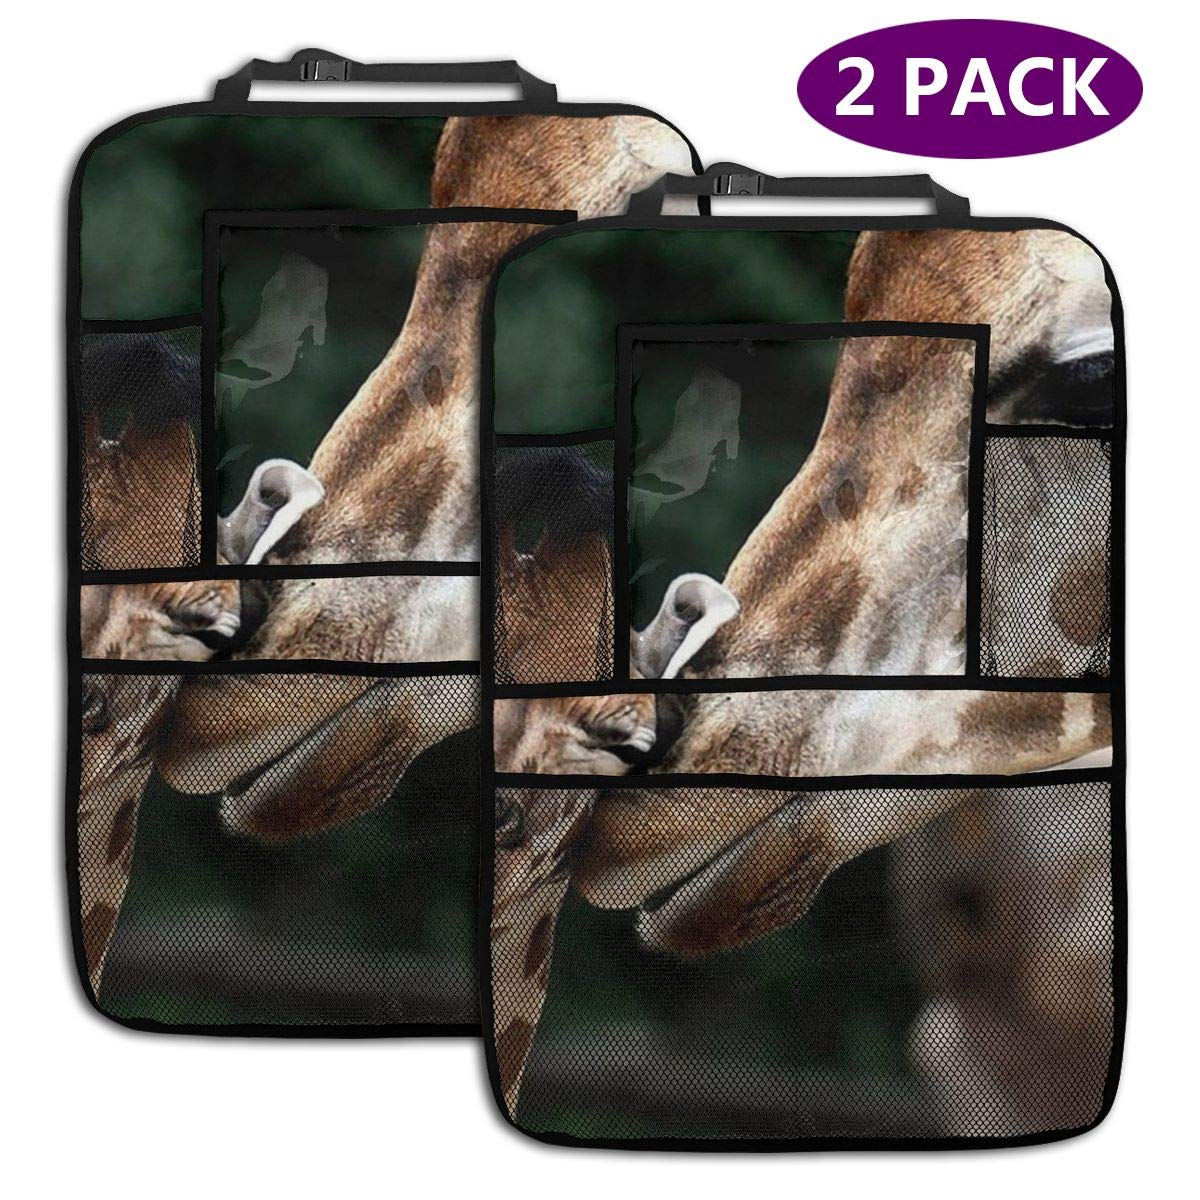 QF6FEICHAN Loving Giraffes Car Seat Back Protectors with Storage Pockets Kick Mats Accessories for Kids and Toddlers by QF6FEICHAN